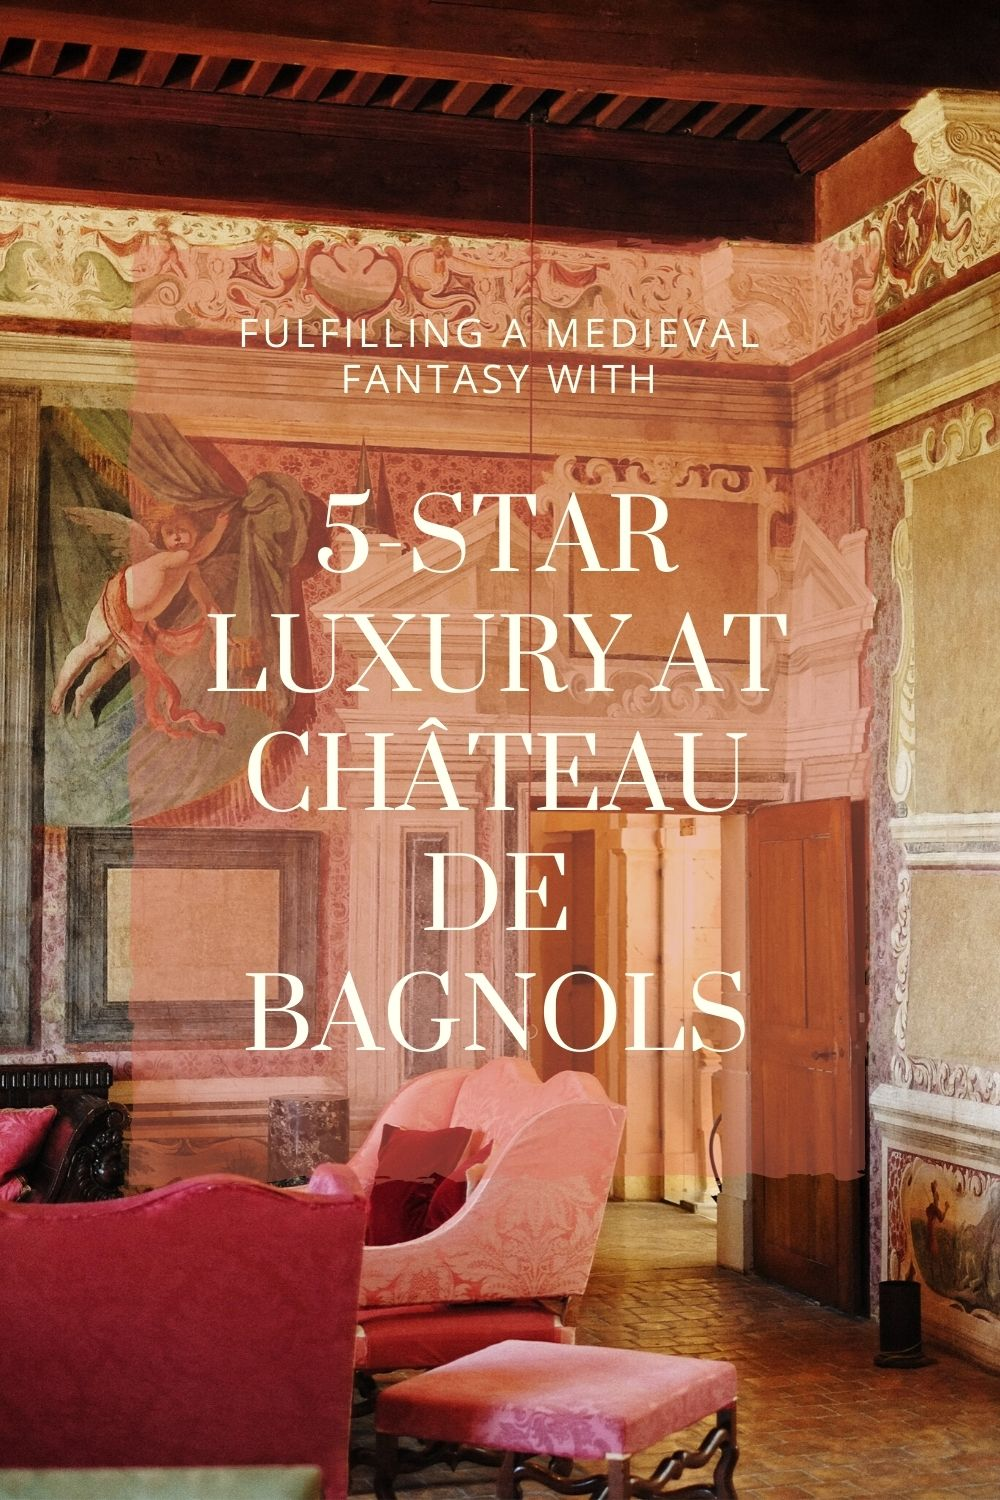 'Fulfilling A Medieval Fantasy With 5-Star Luxury At Château De Bagnols' - Château de Bagnols luxury castle hotel reviews by White Caviar Life.